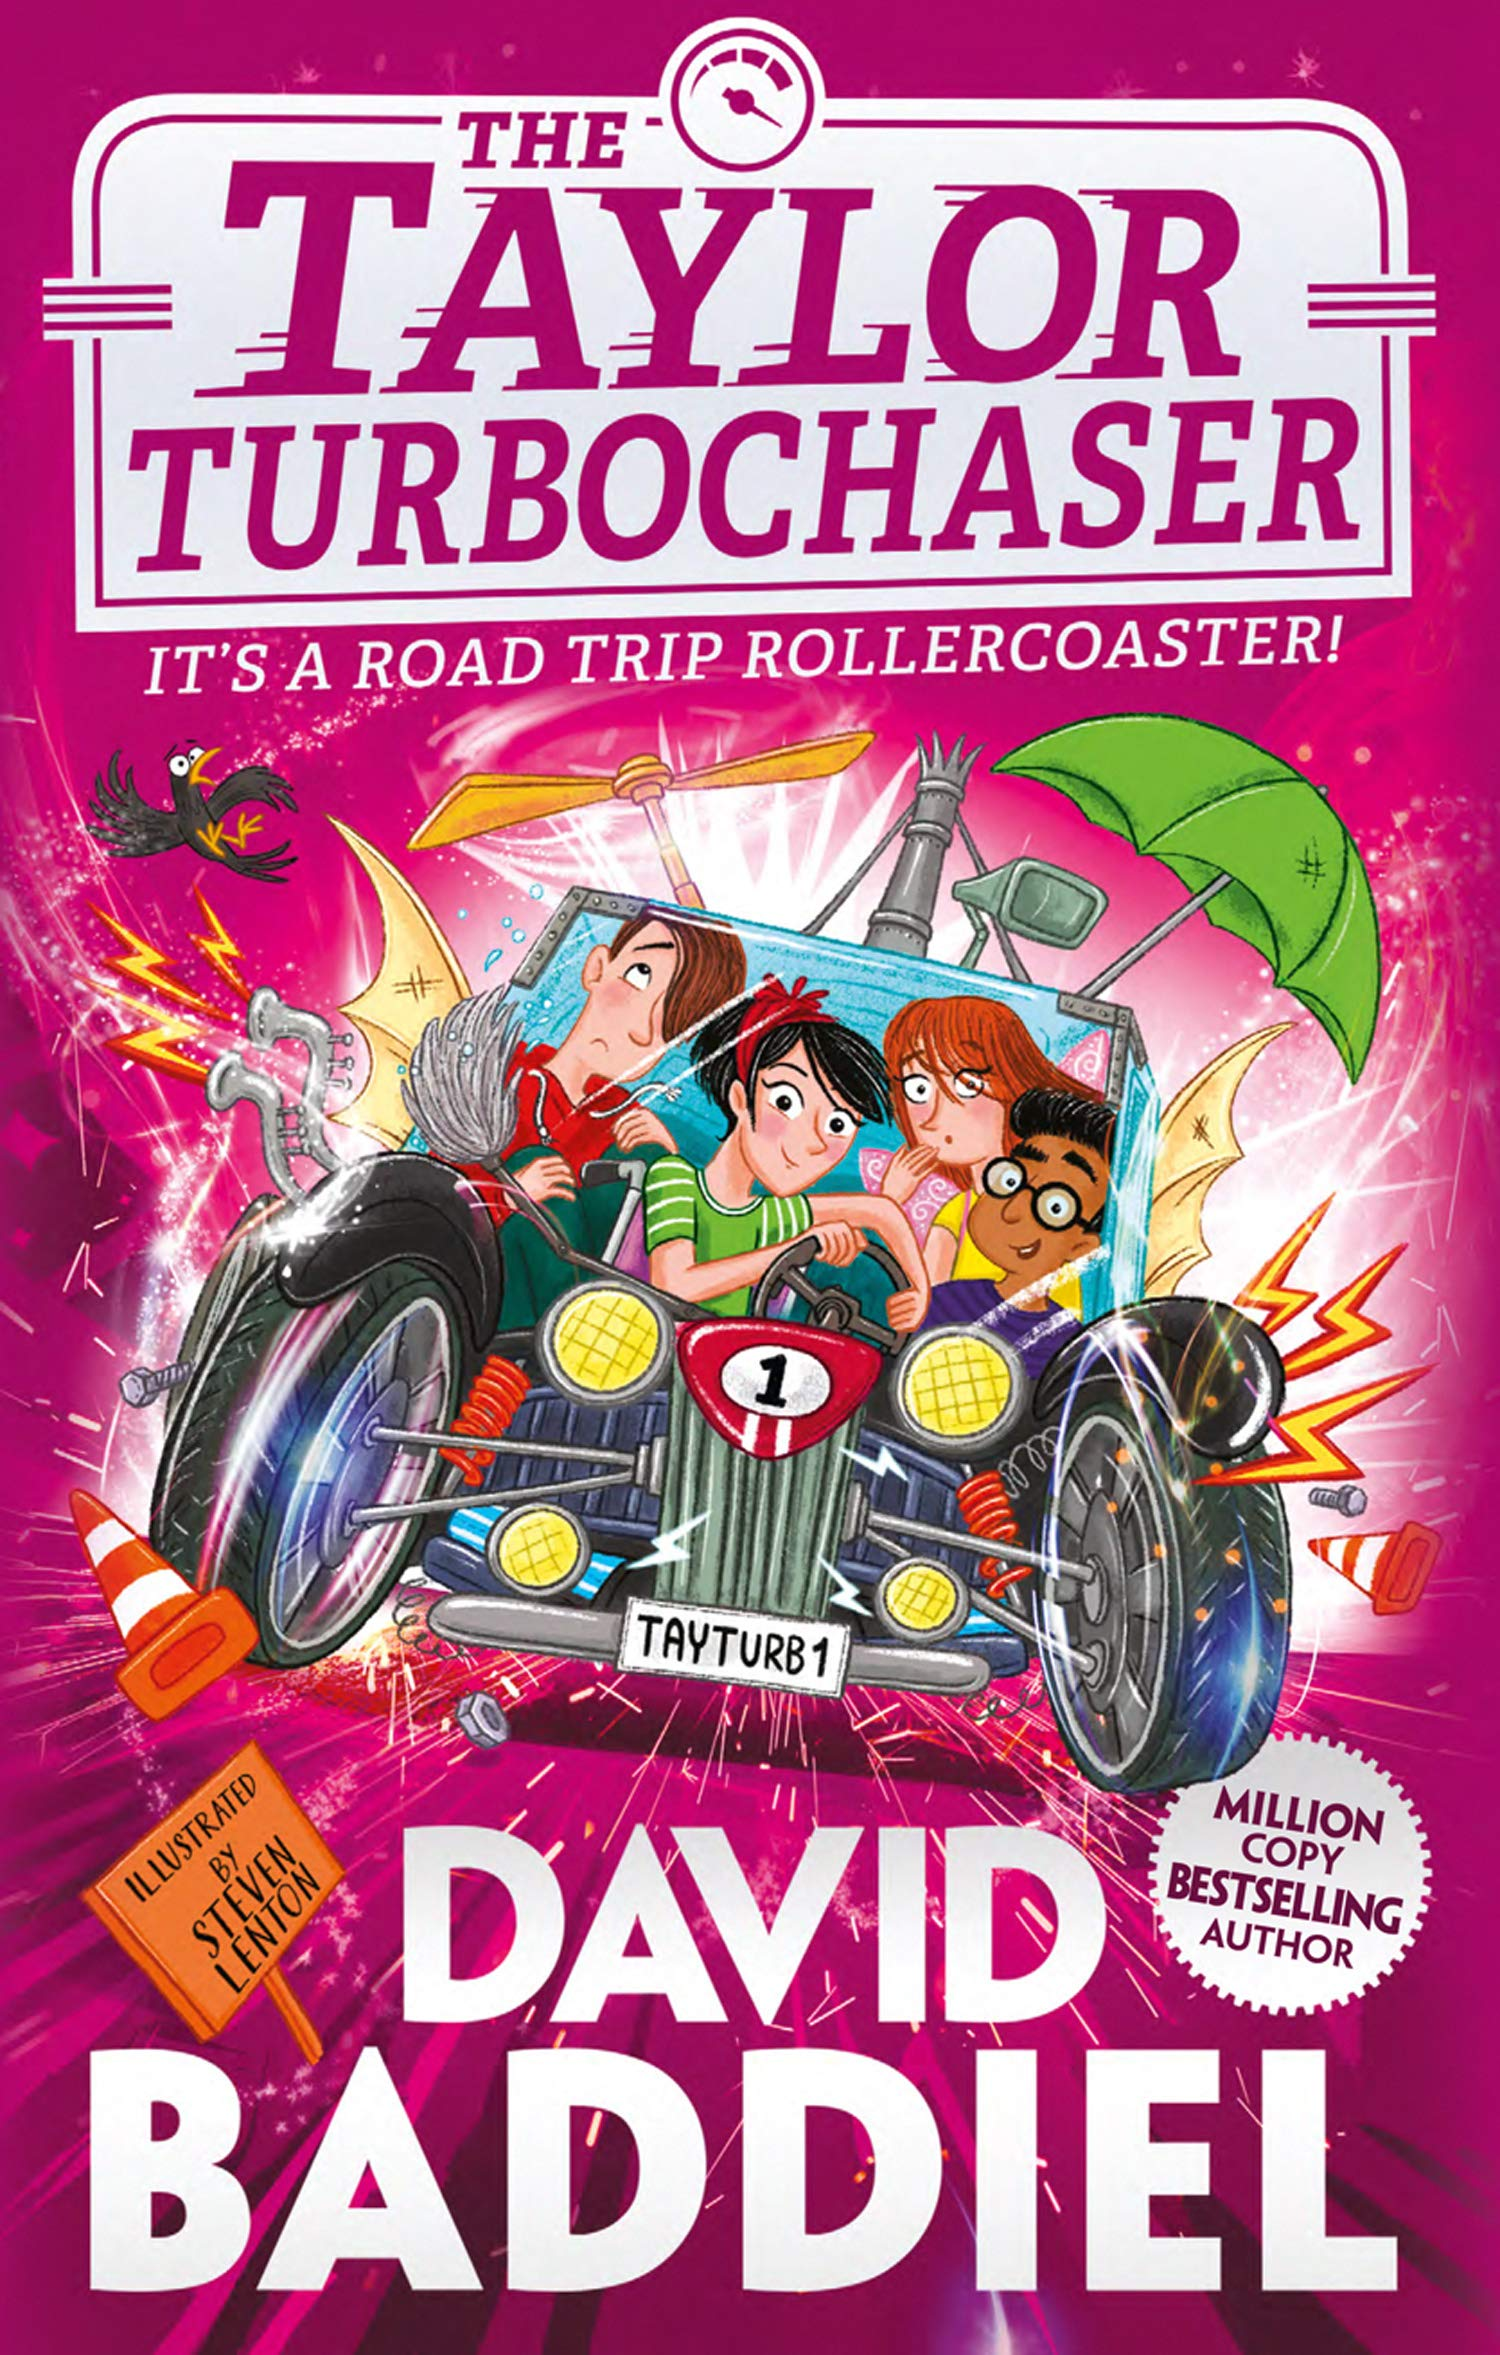 The Taylor Turbochaser Book Cover